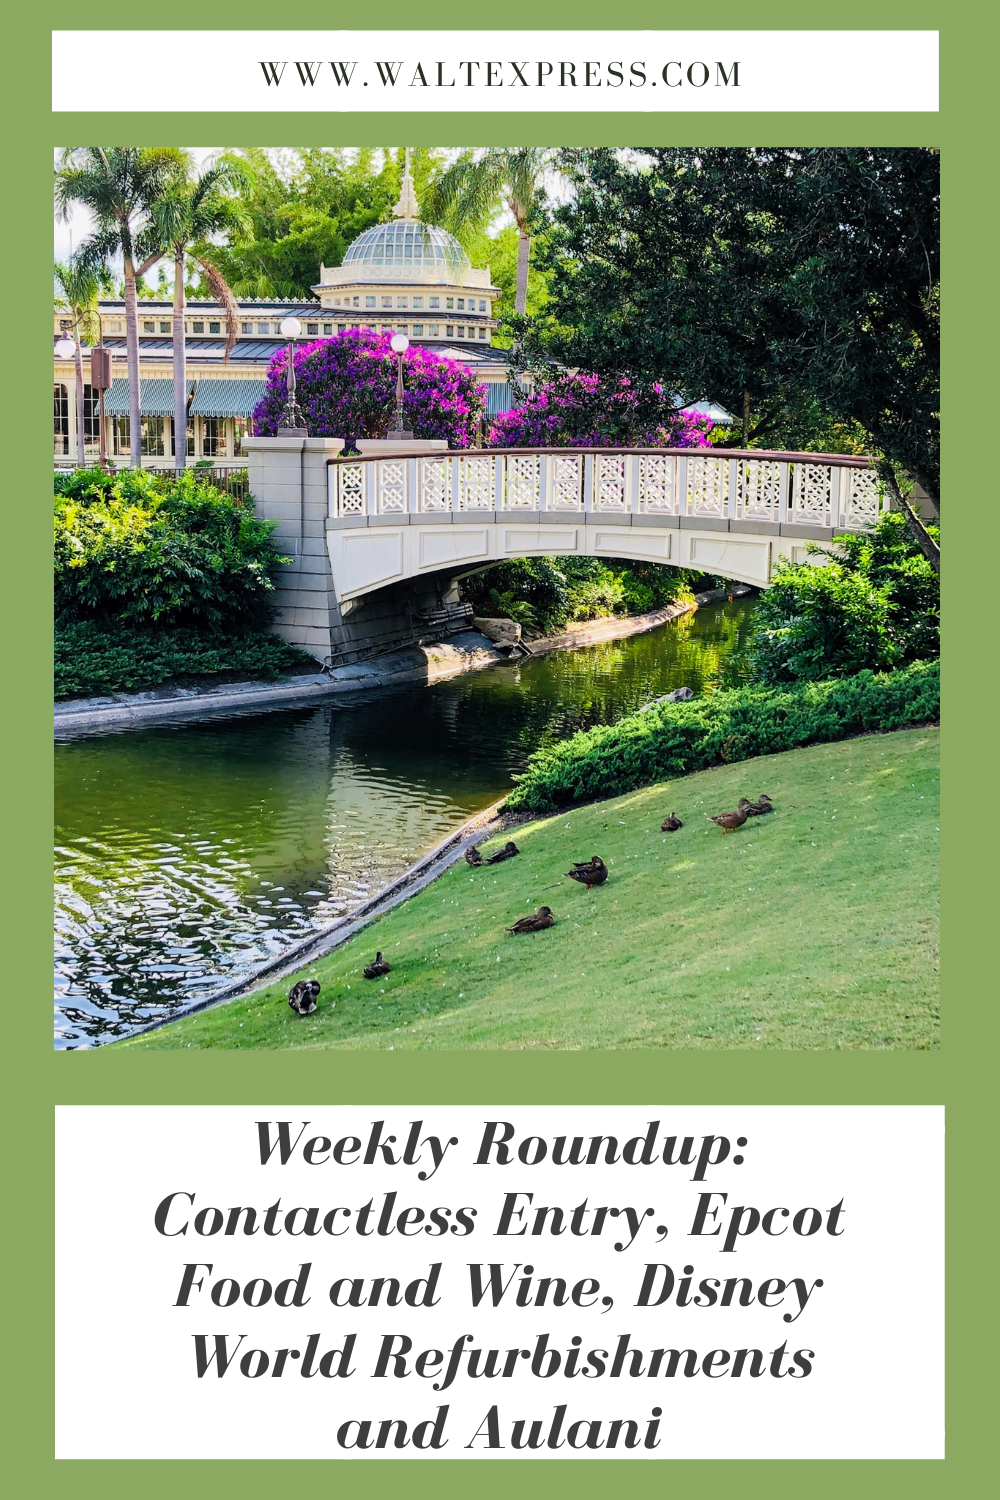 Weekly Roundup: Contactless Entry, Epcot Food and Wine, Disney World Refurbishments and Aulani